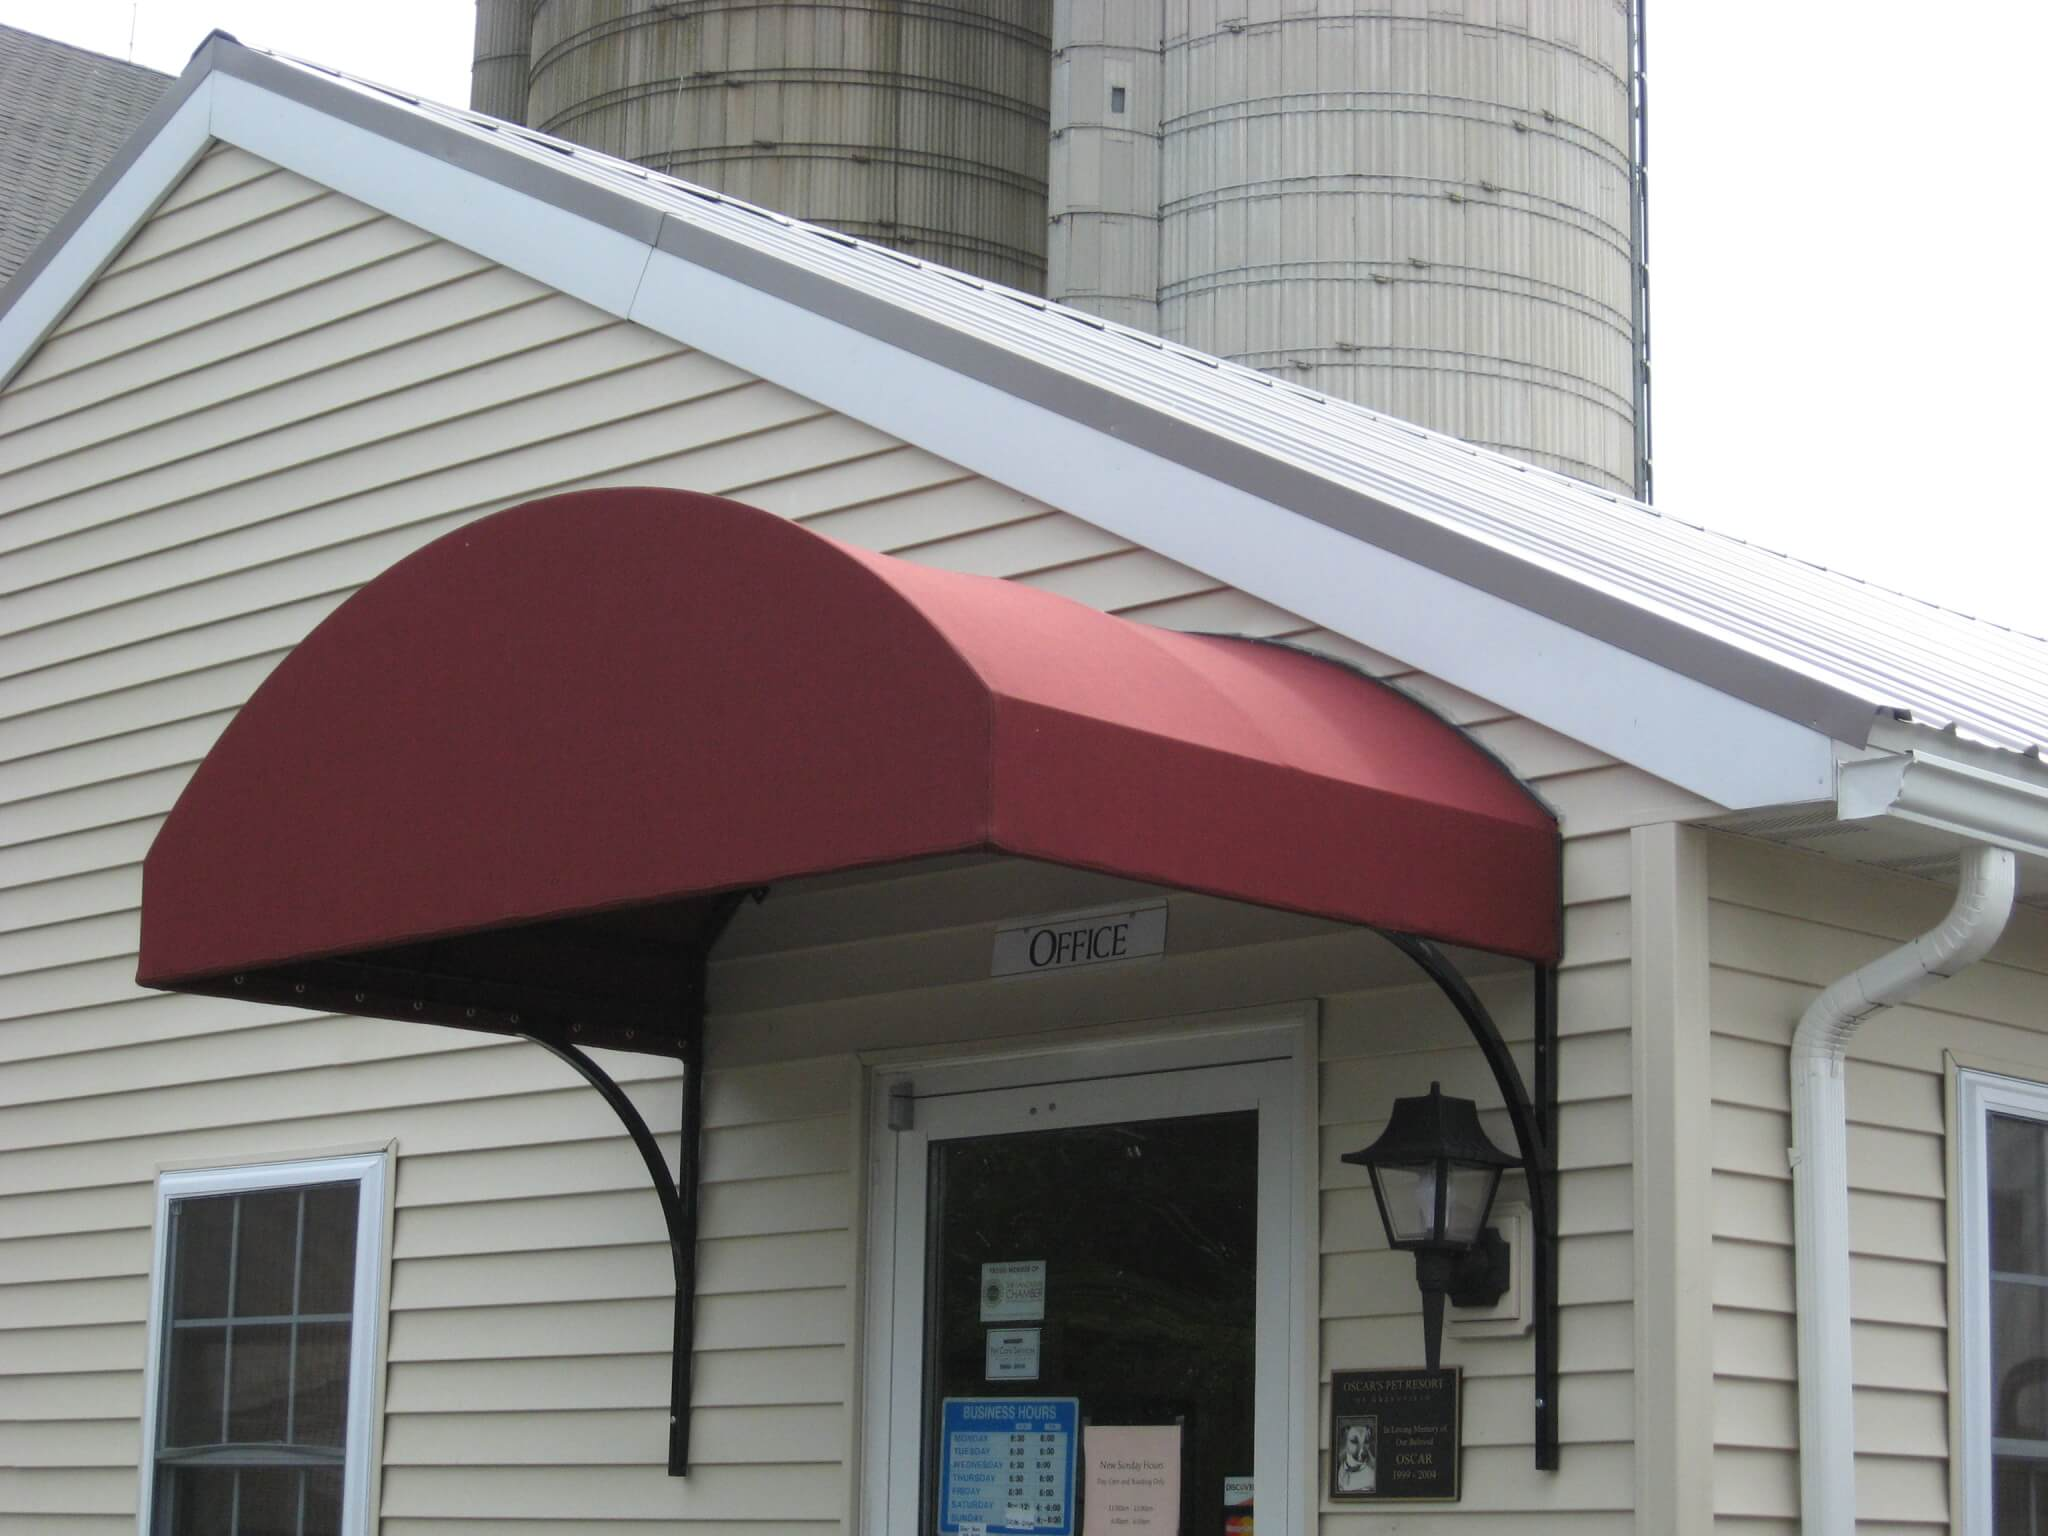 Arched Canvas Commercial Awning Installed Over A Door